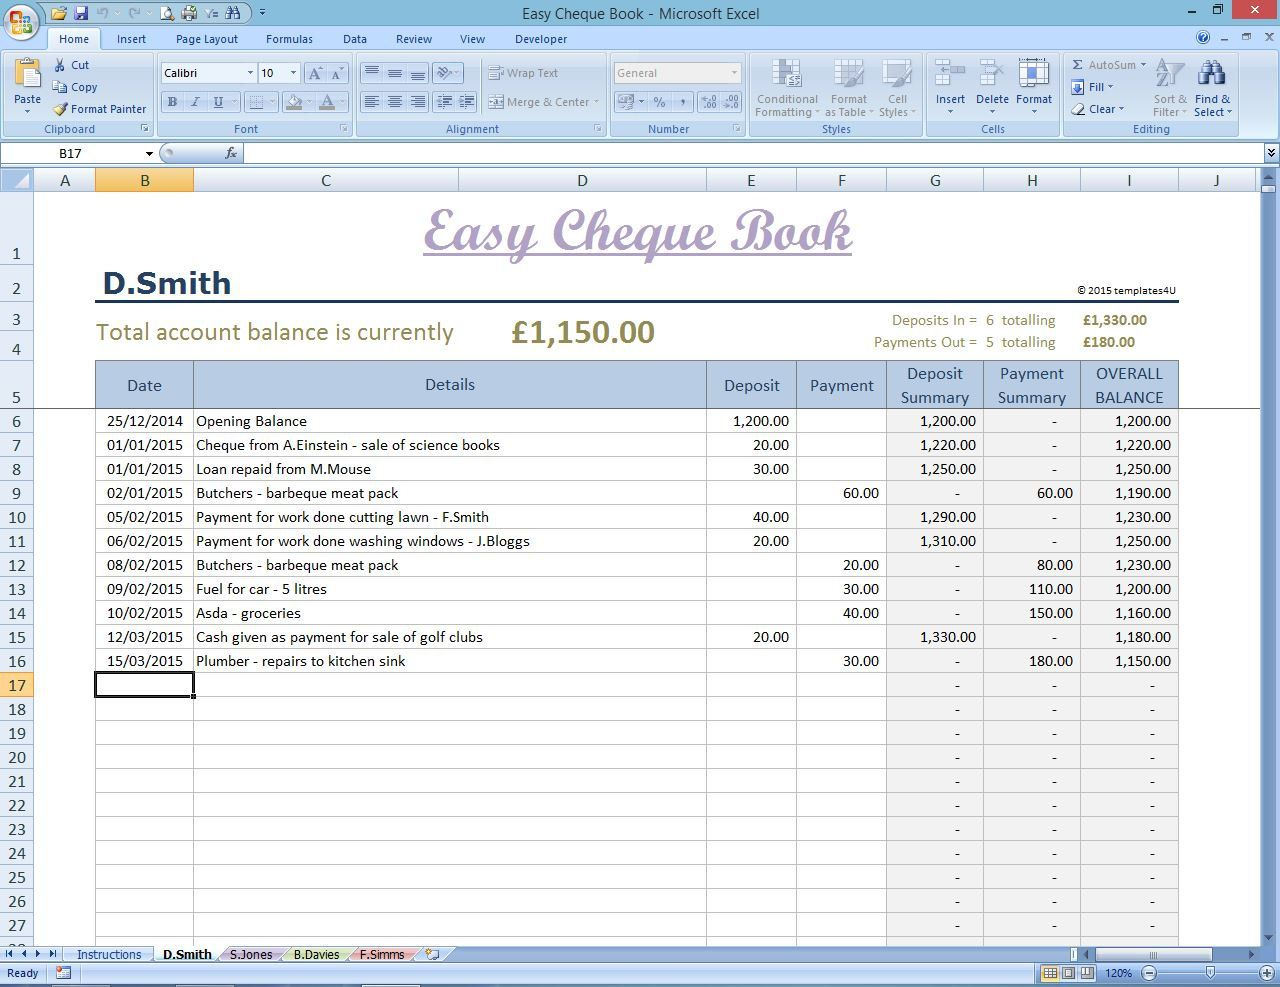 Easy Cheque Book Template. Excel Finance Spreadsheet. Money Manager ...